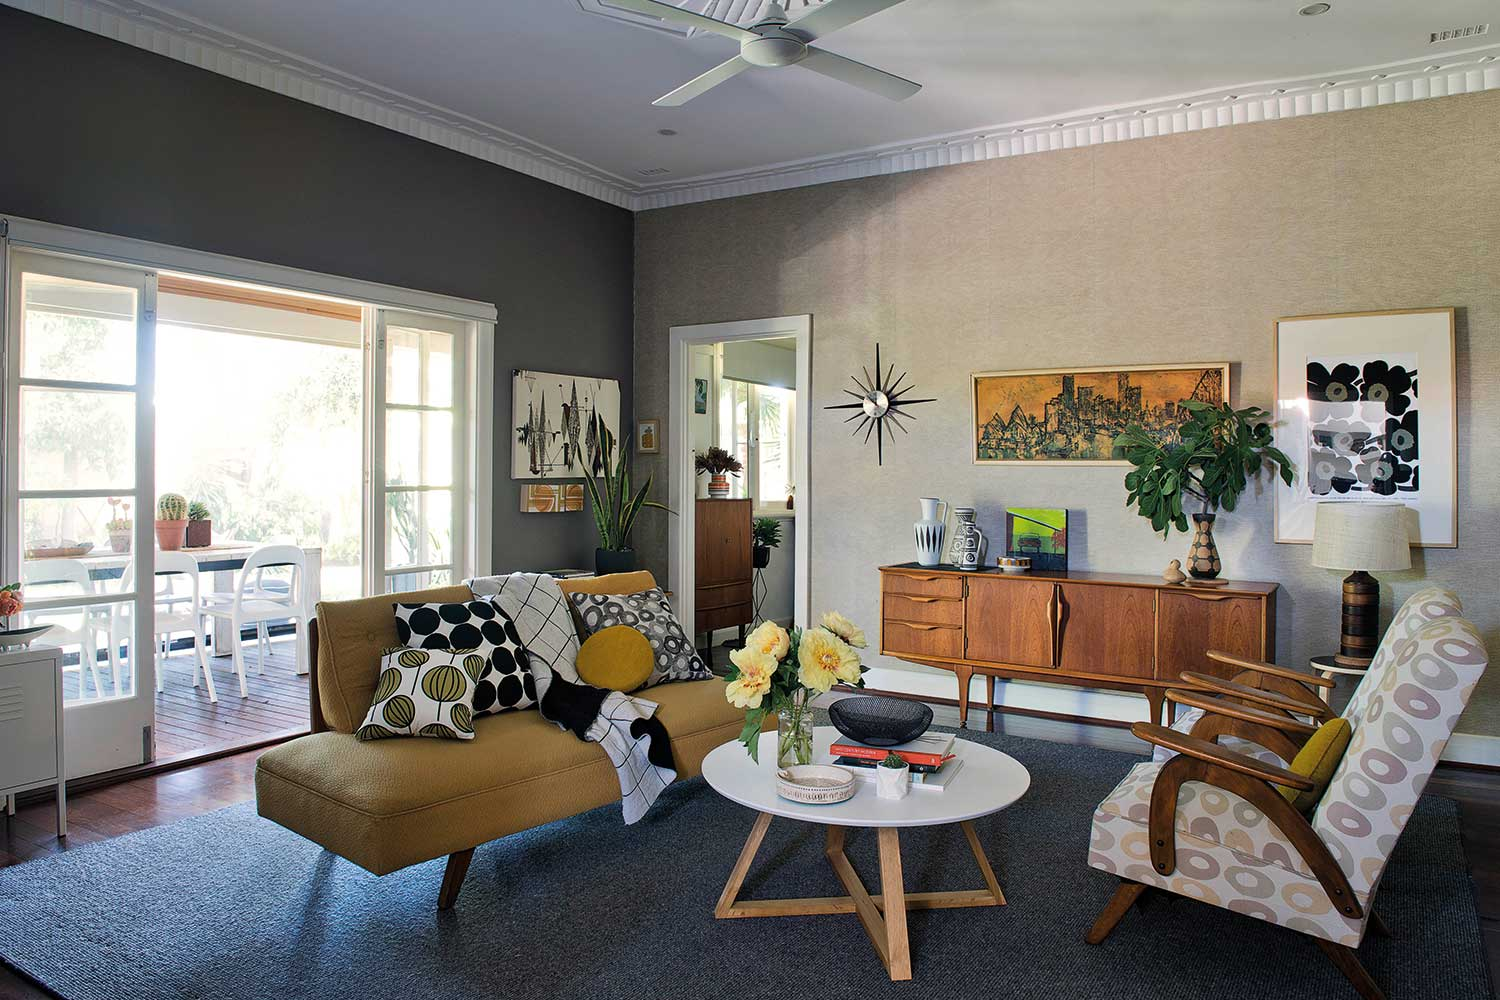 10 No-fuss Ways To Figuring Out Your Mid-century Modern